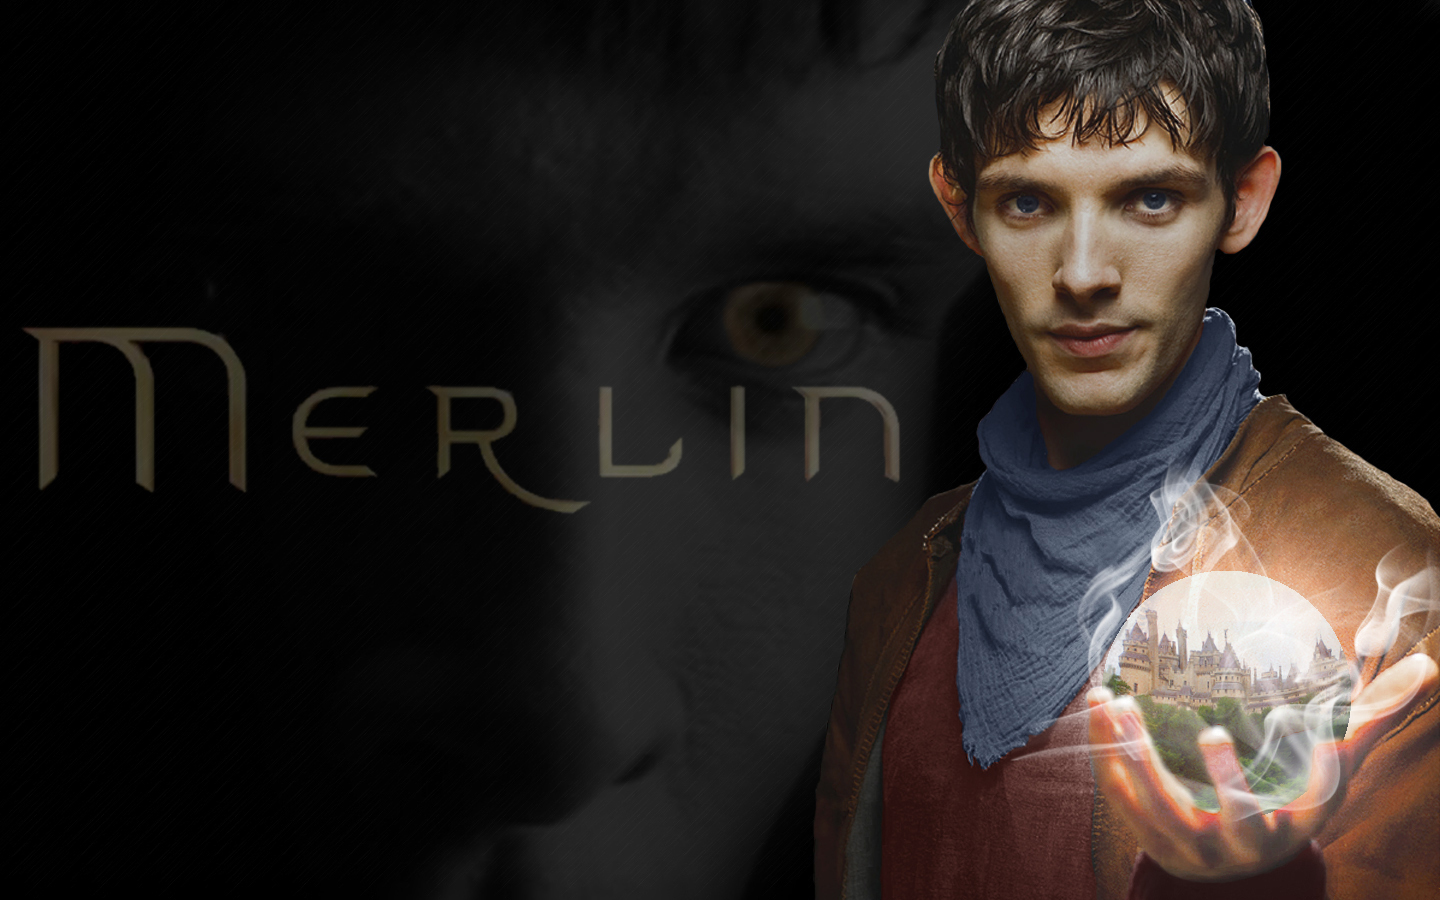 http://images2.fanpop.com/image/photos/14400000/The-Fate-merlin-on-bbc-14496723-1440-900.jpg